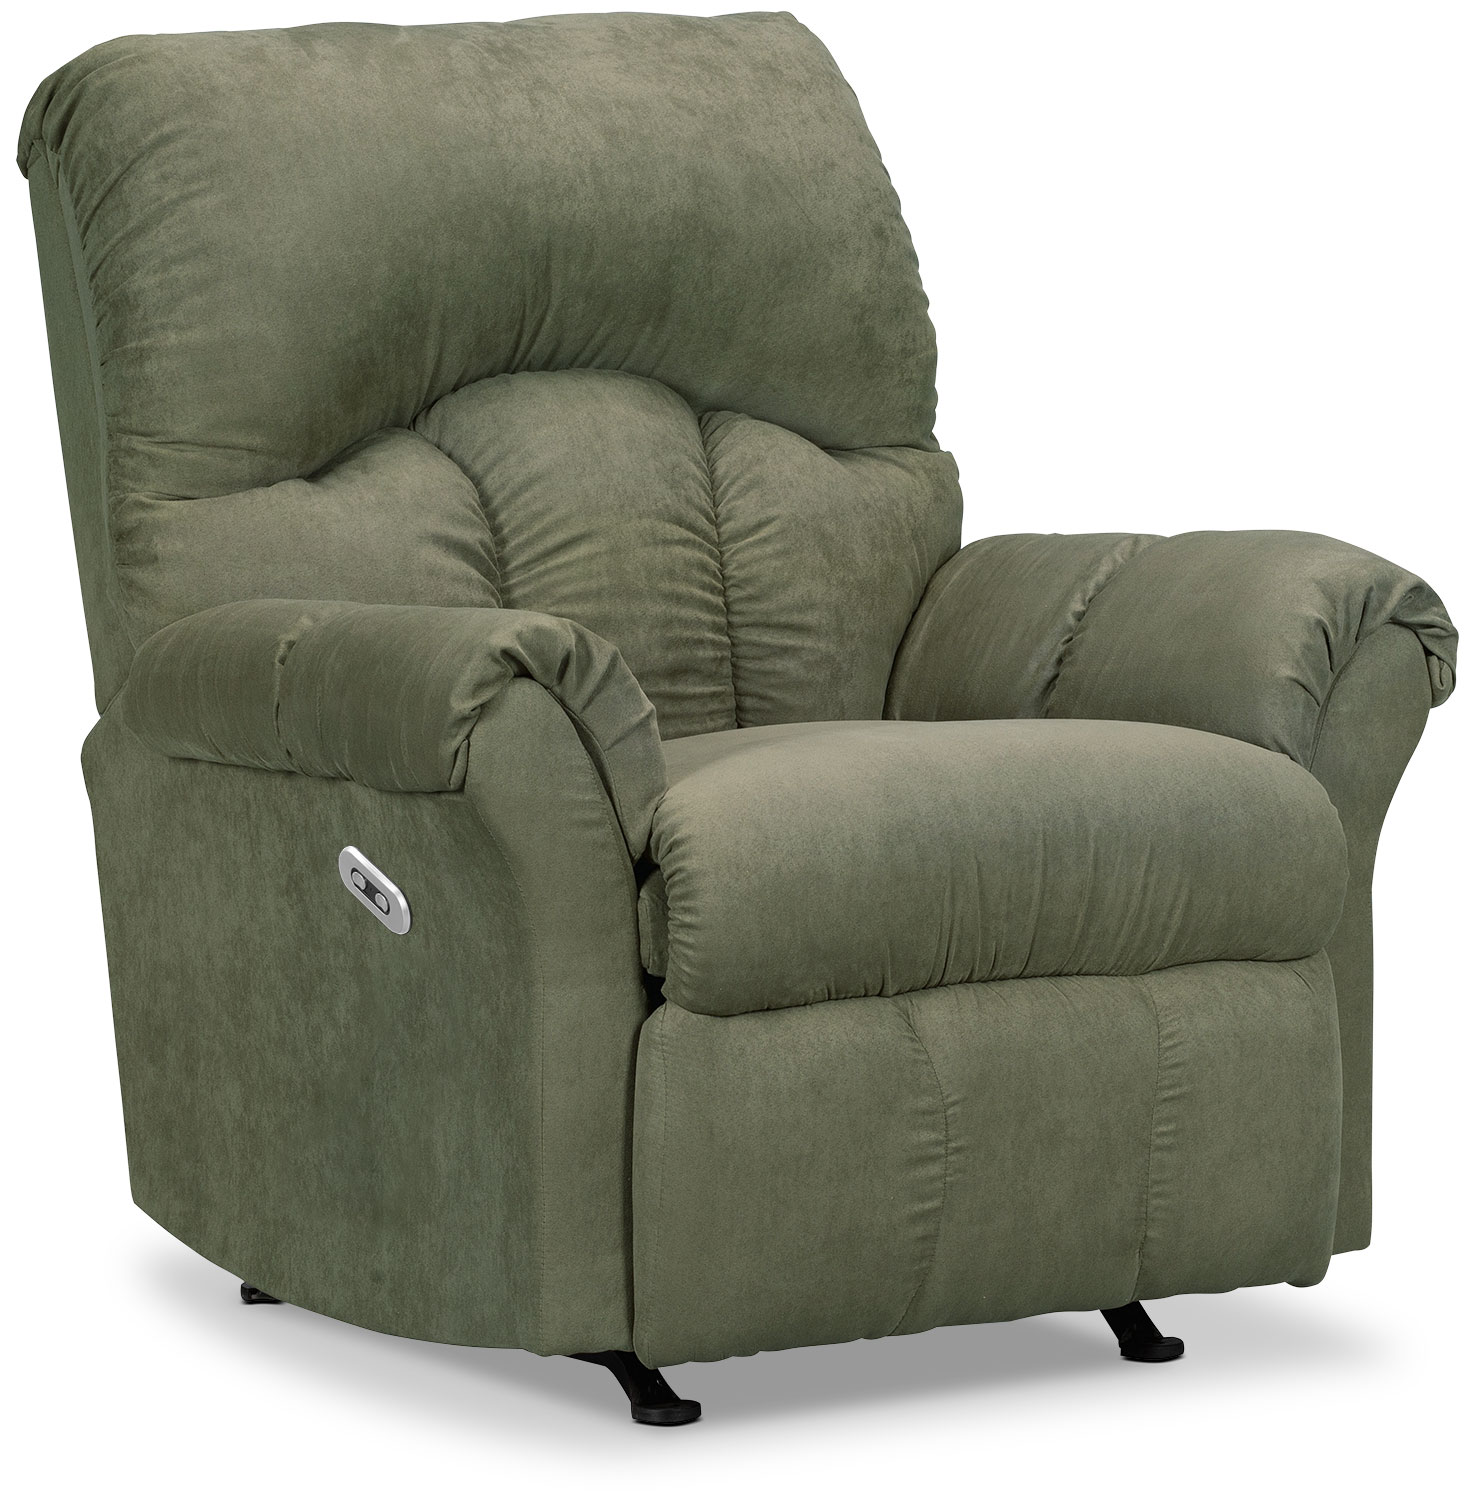 Designed2B Recliner 6734 Microsuede Power Reclining Chair - Fern